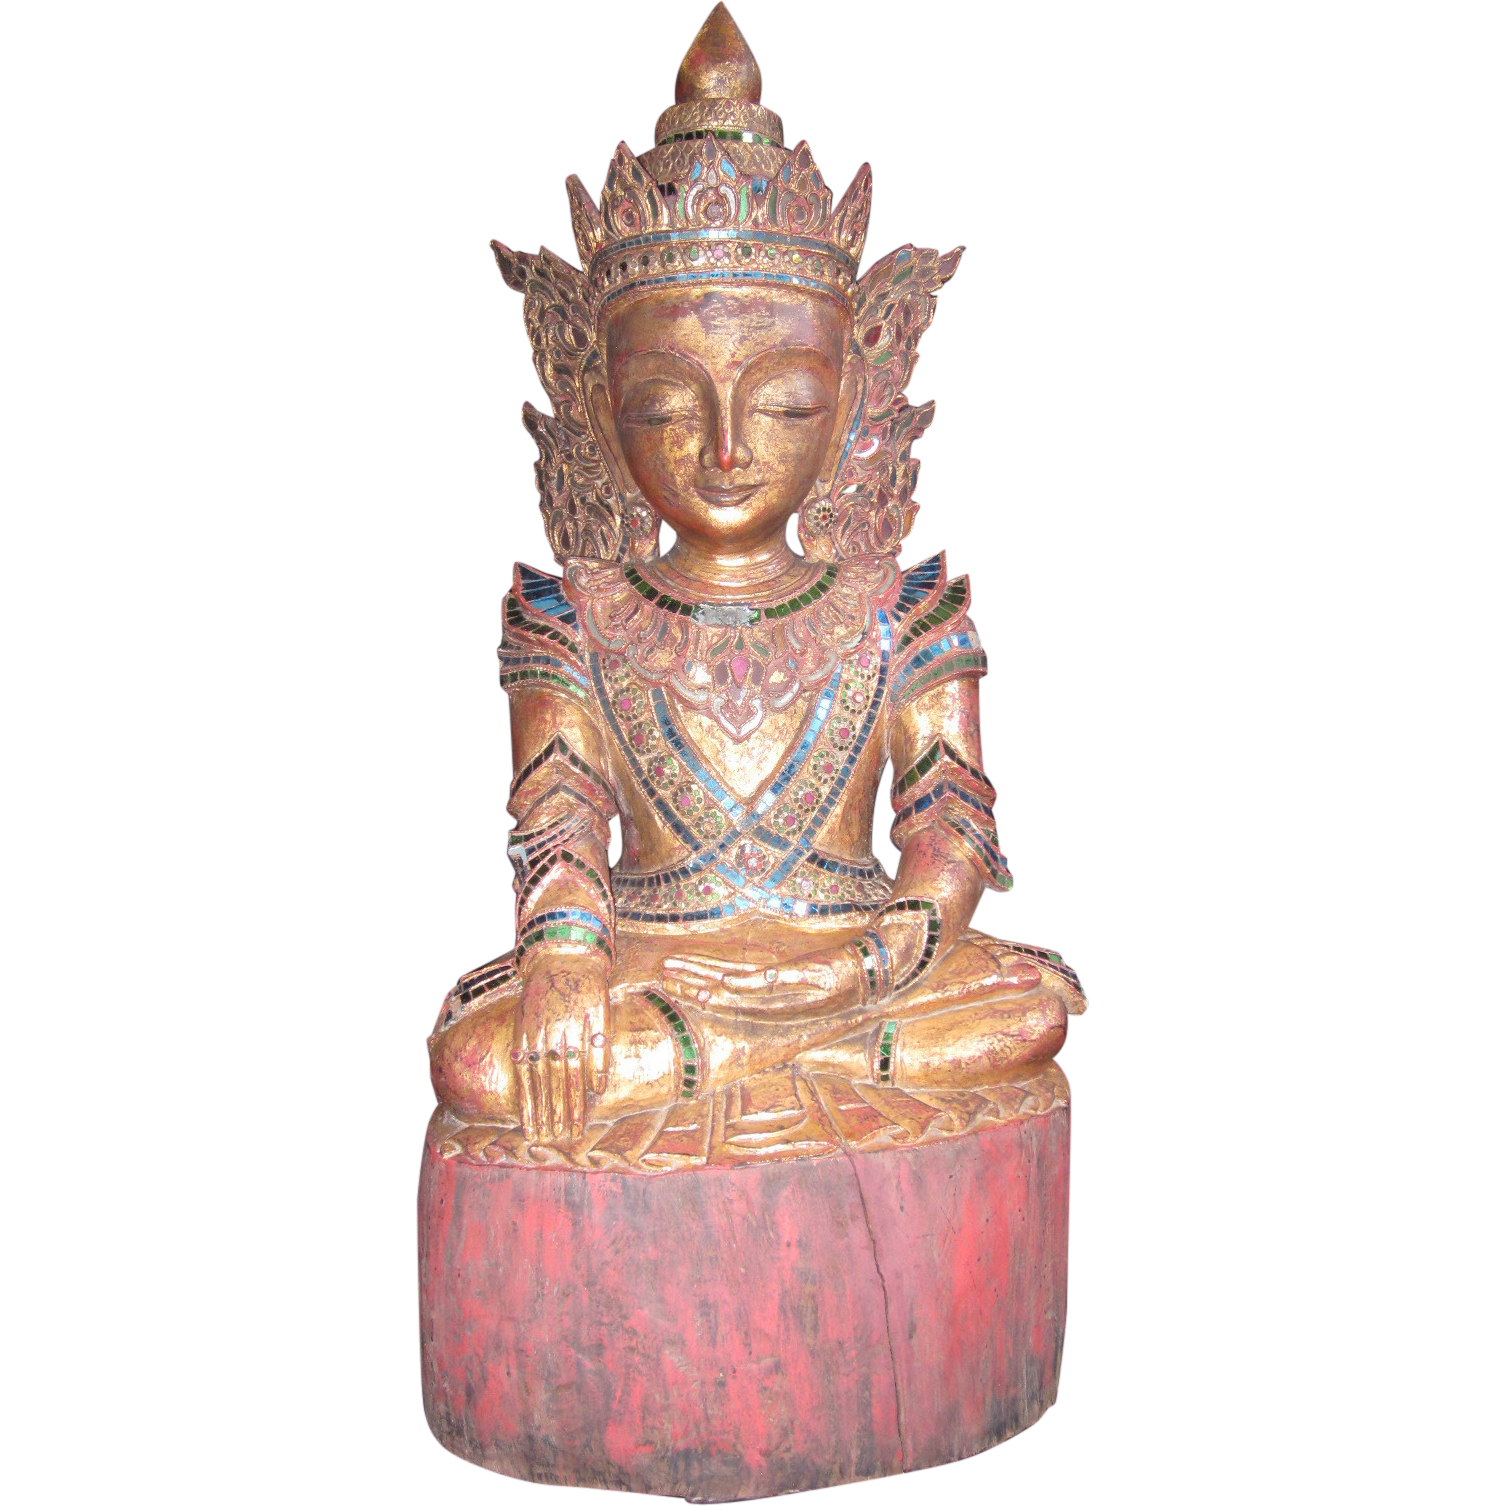 Large Wooden Early 20th c. Buddha Sculpture, Gilt Finish with Mirrored Tiles